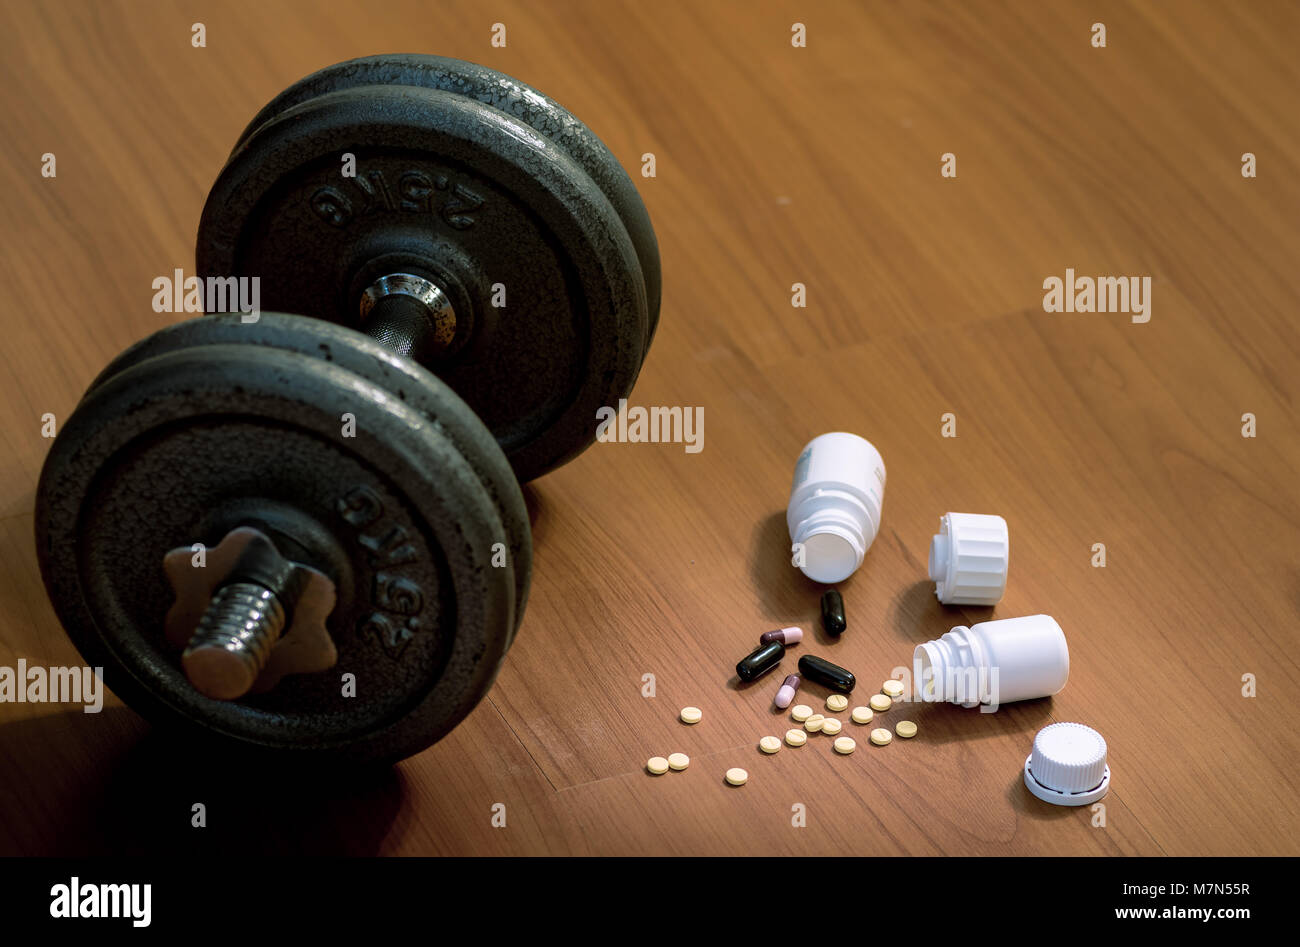 Steroid pills and capsules with dumbbell weight in the background - doping in sport. Stock Photo